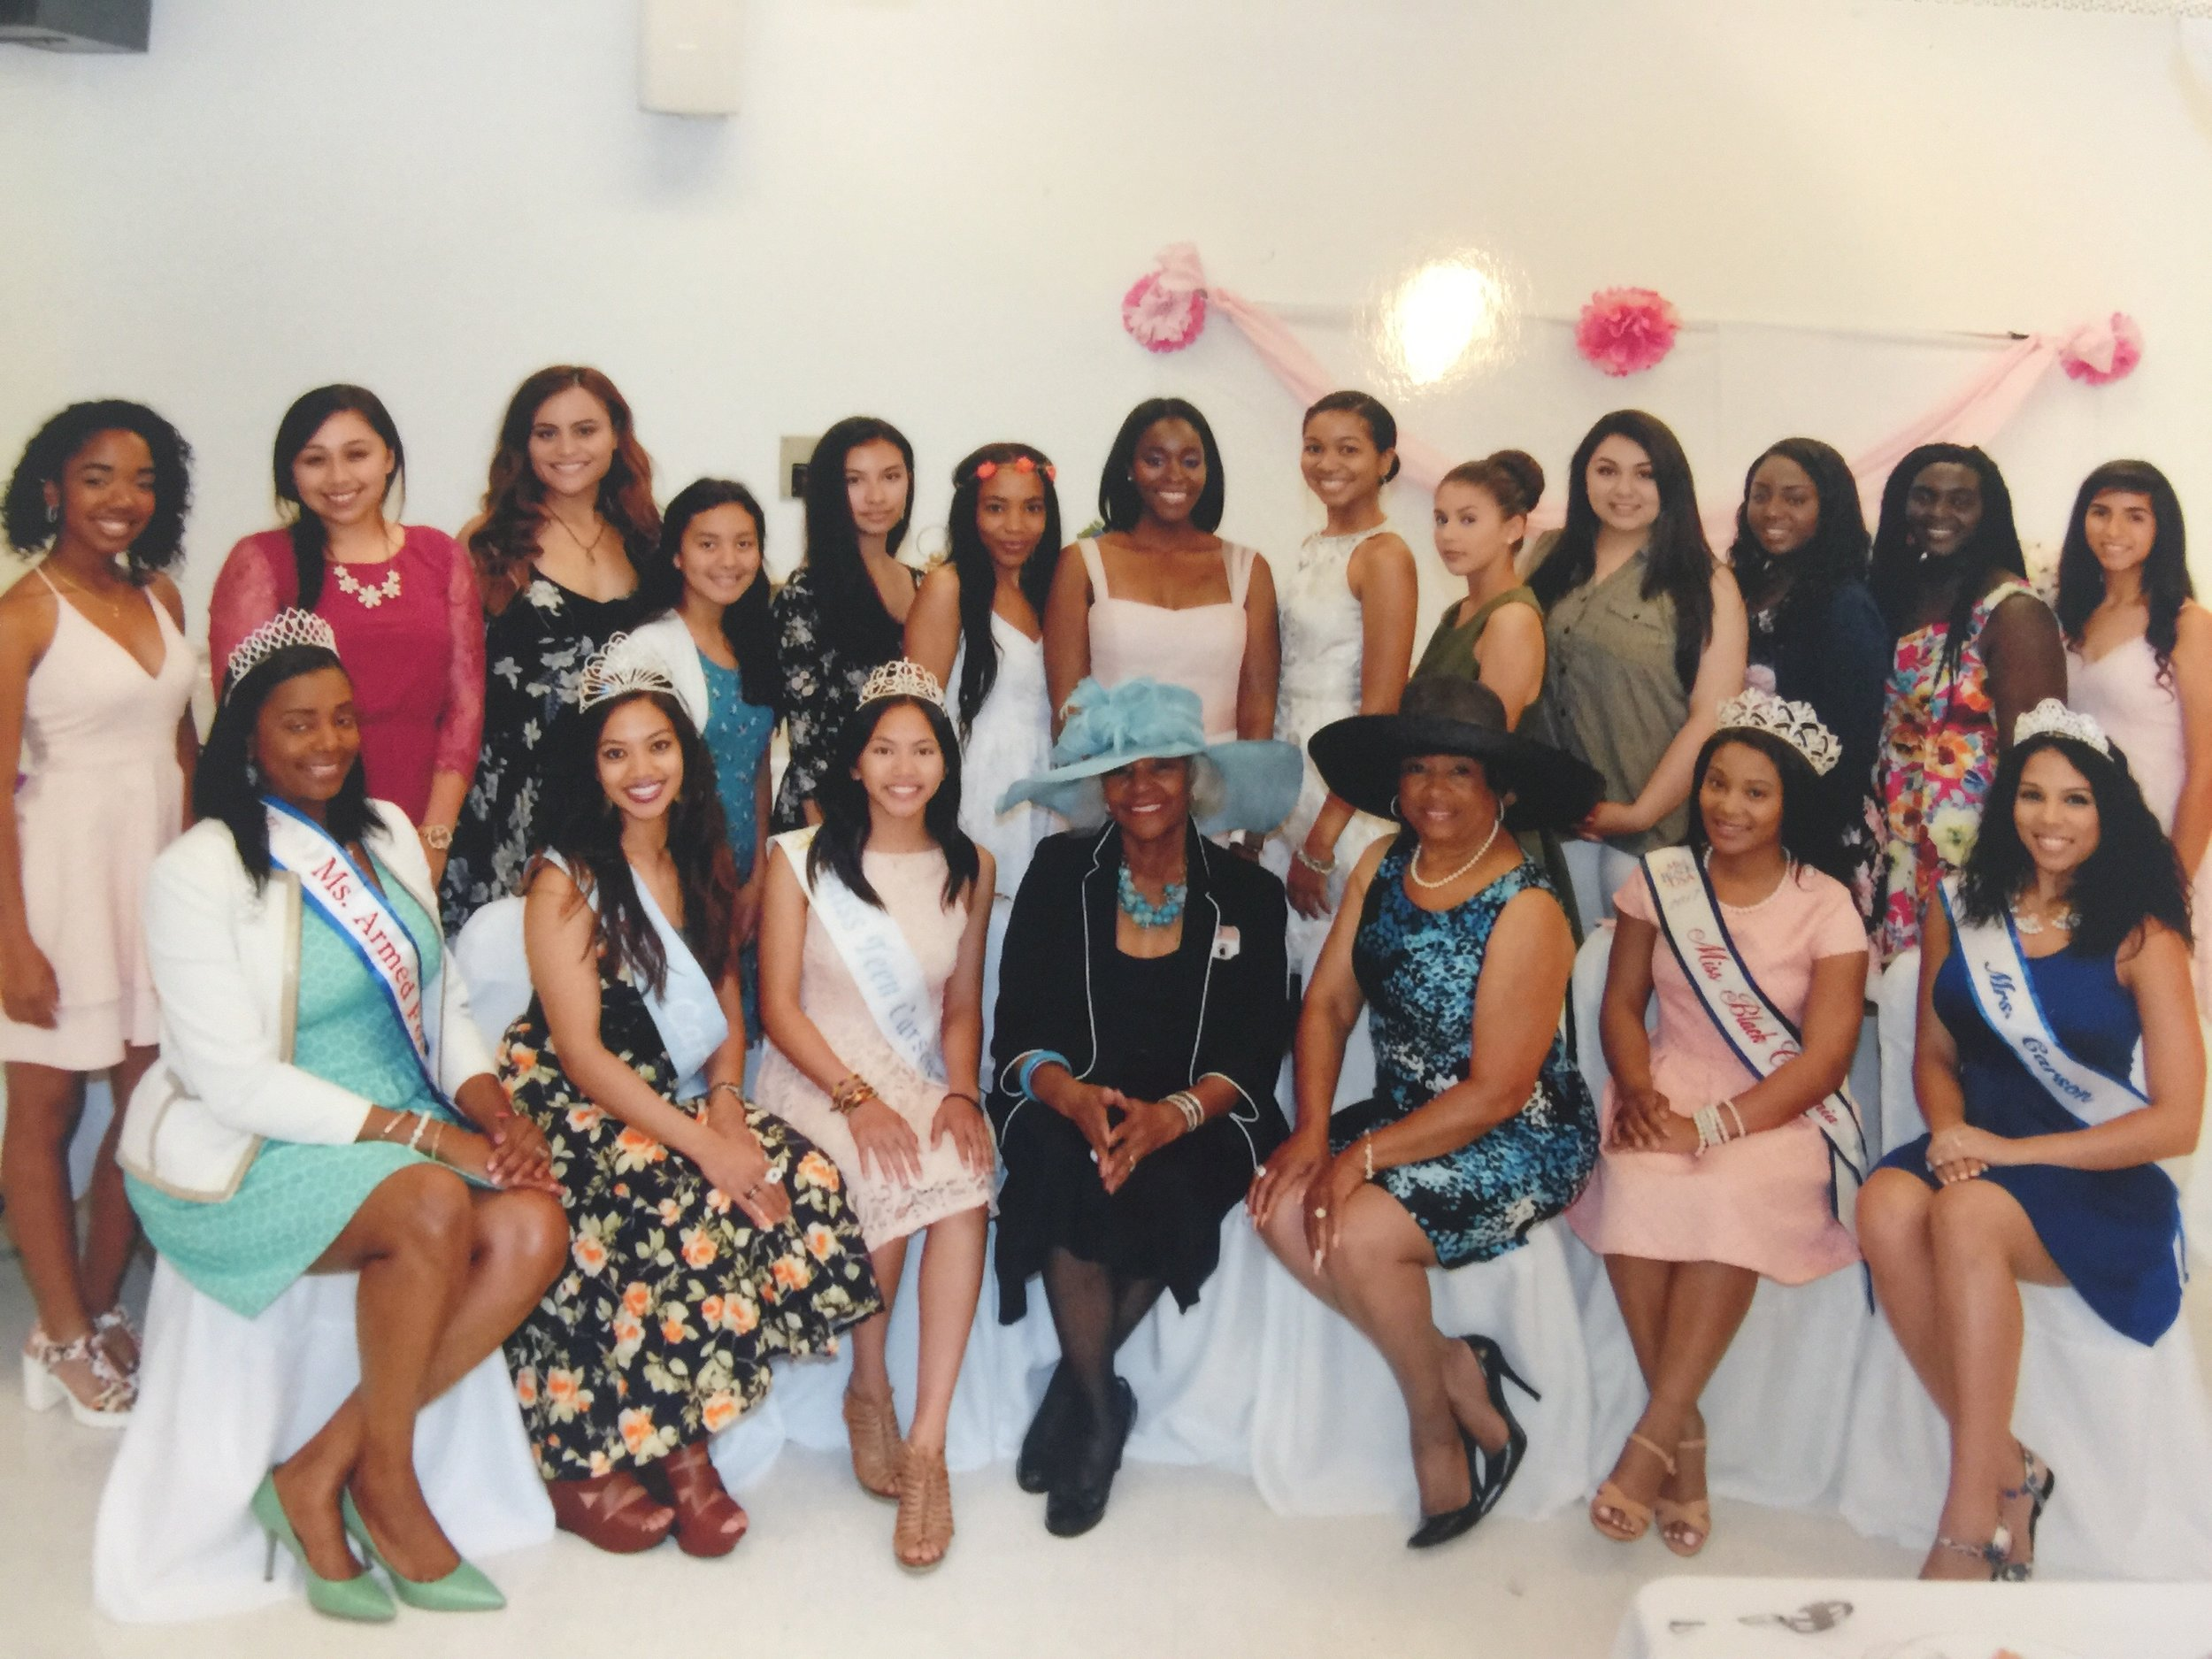 Kristi Eddy (bottom right) works with the Carson Parks and Recreation team along with City Council to host a tea party for young girls in Carson along with the Miss Carson contestants!